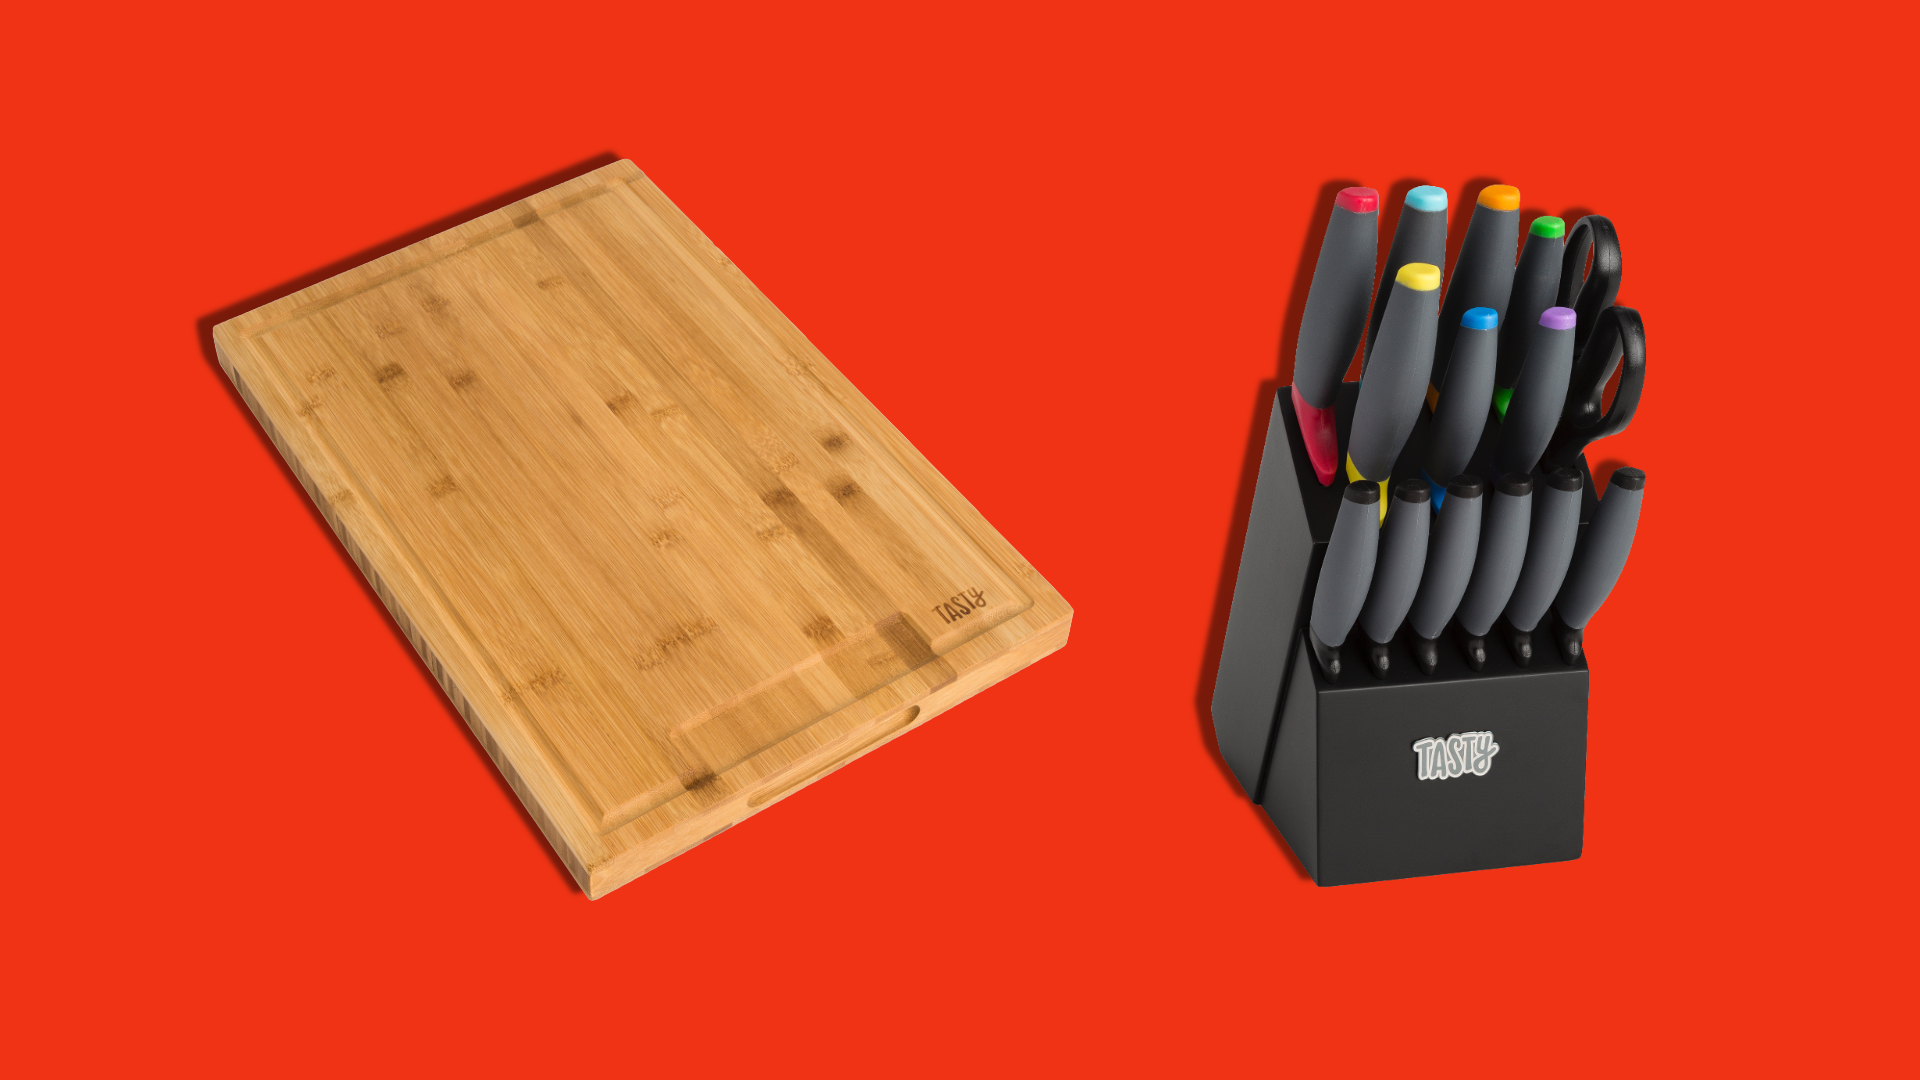 A wooden cutting board and a knife block on a red background.